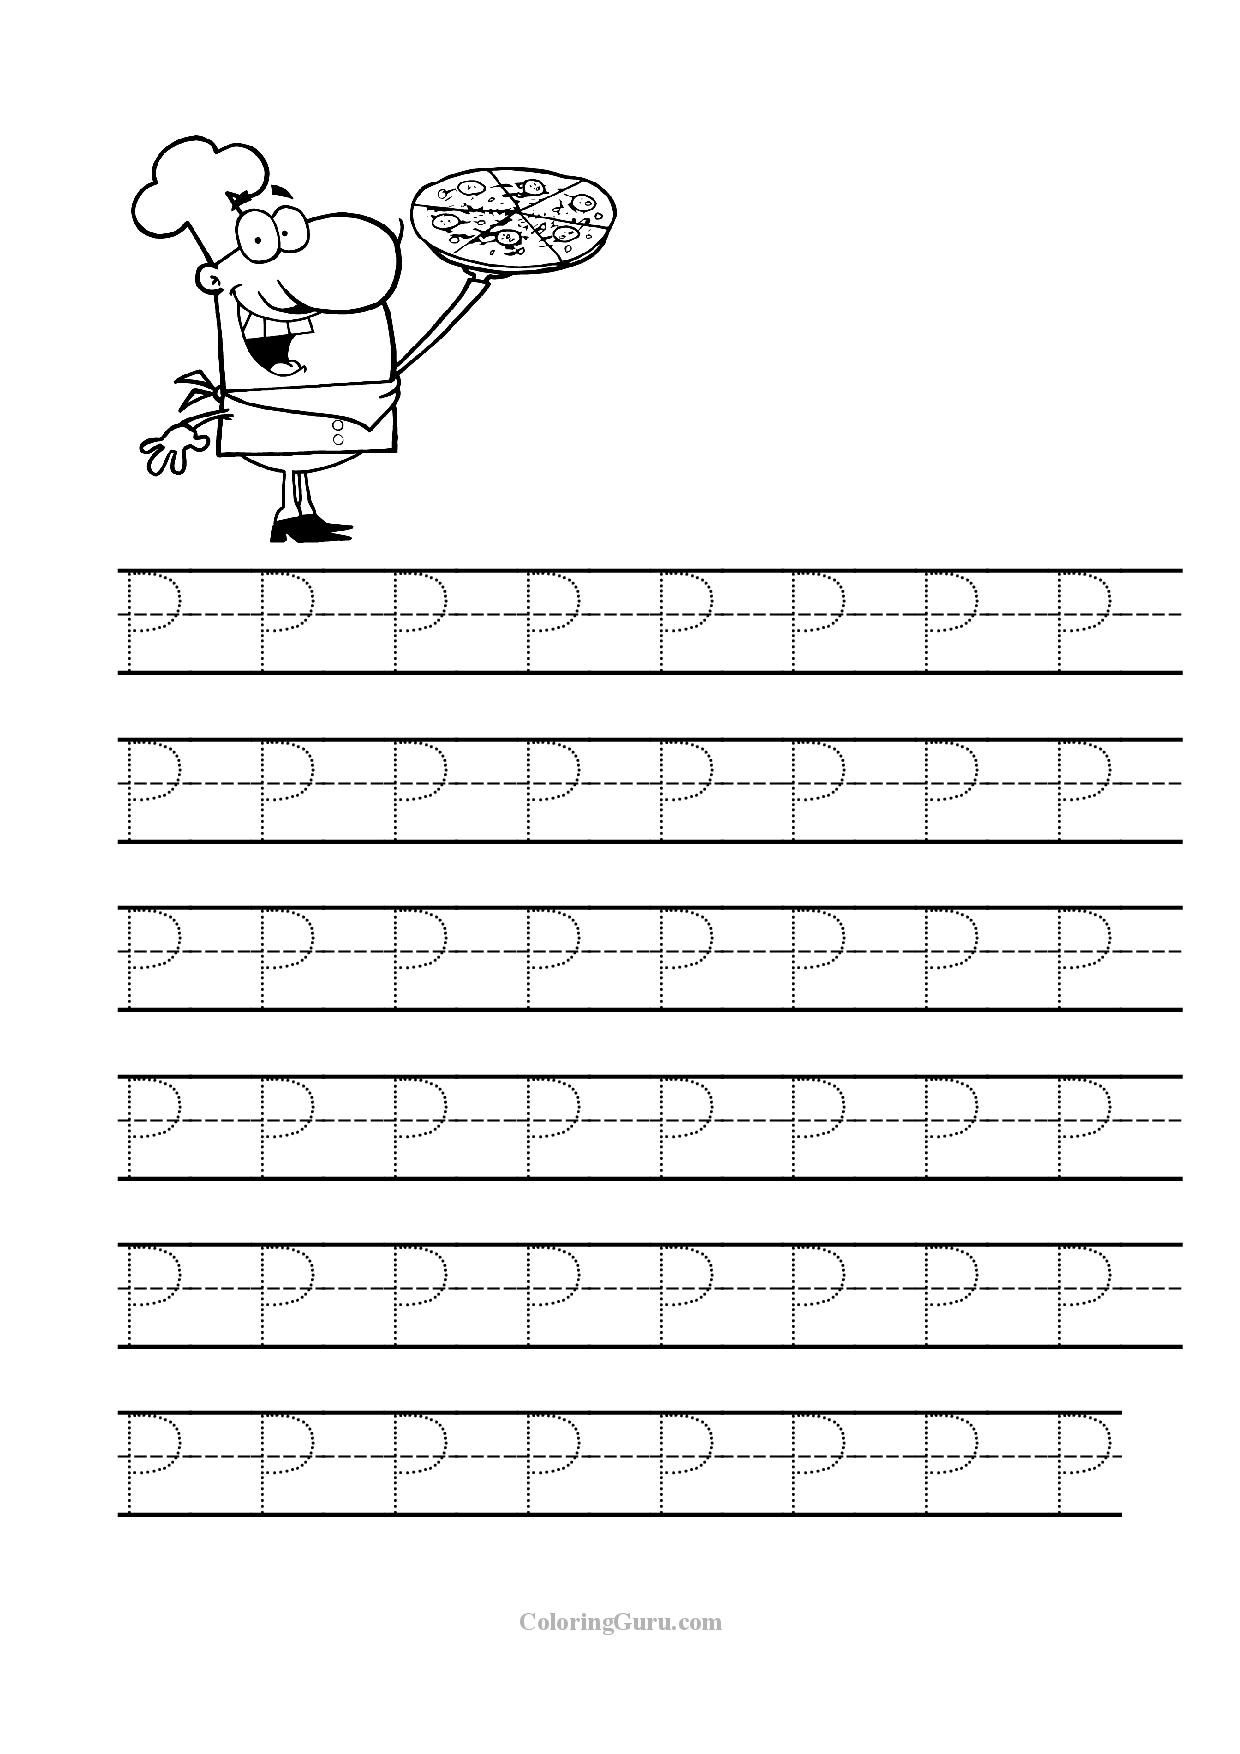 Free Printable Tracing Letter P Worksheets For Preschool | Tracing - Free Printable Preschool Worksheets Tracing Letters